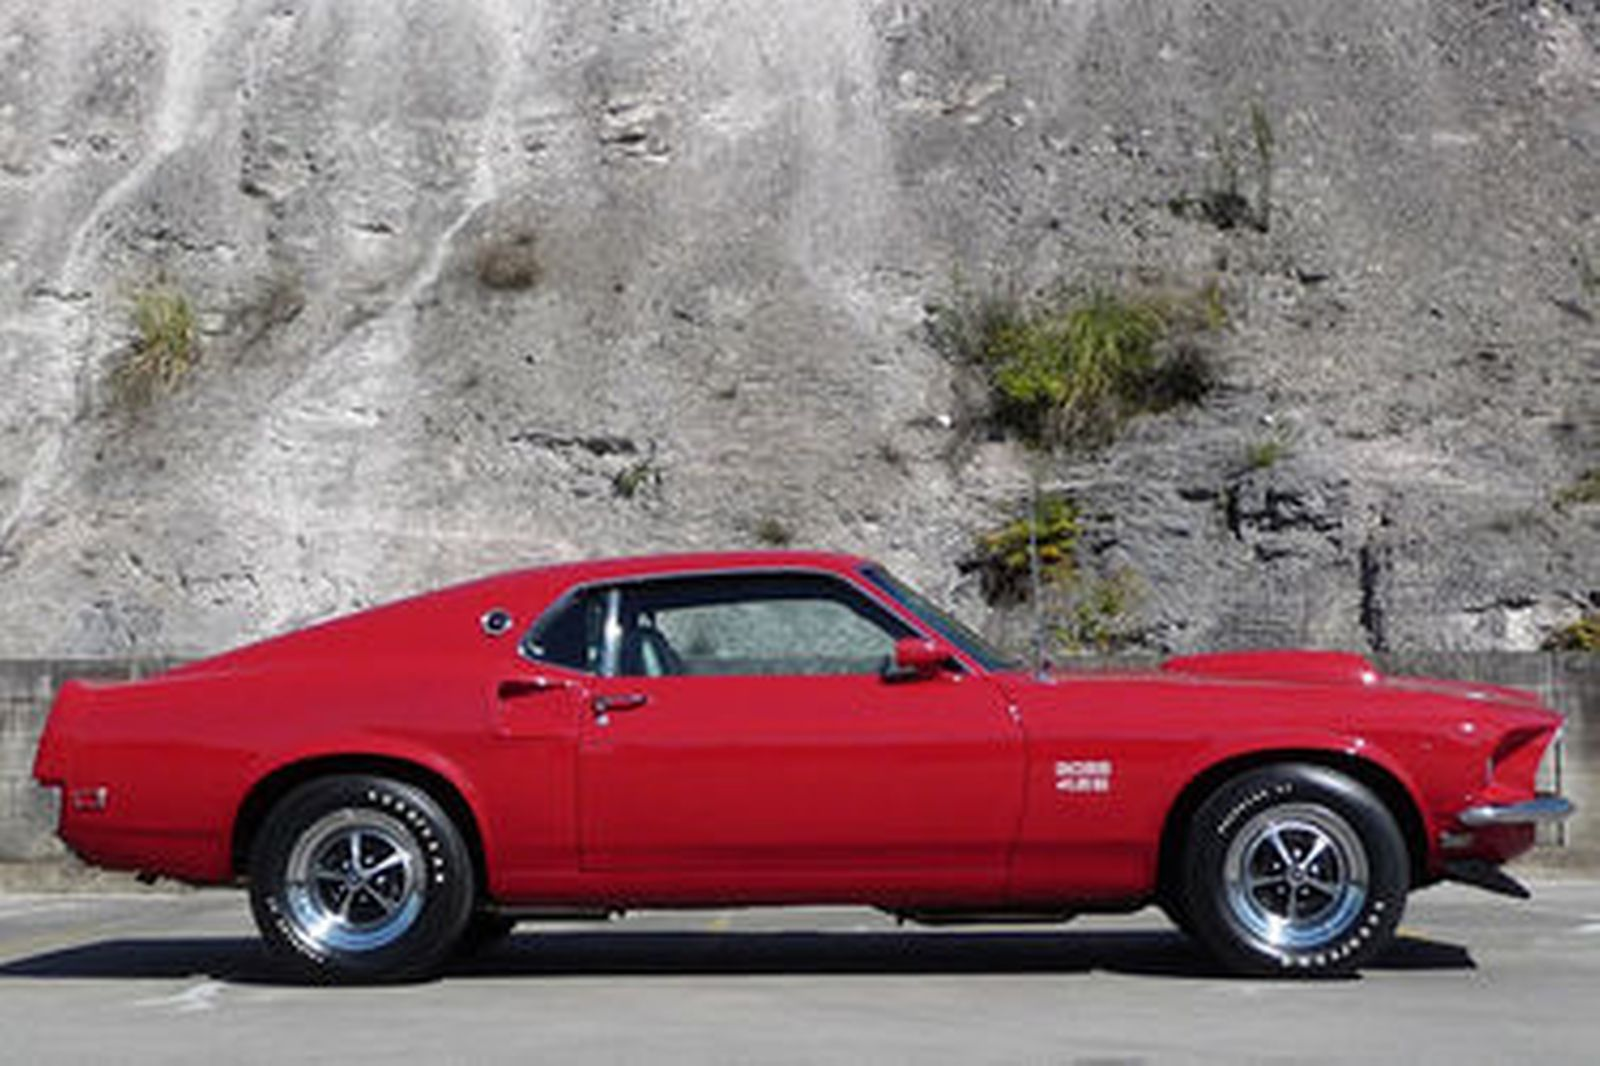 Ford Mustang Boss 429 Fastback Lhd Auctions Lot 23 Shannons 1969